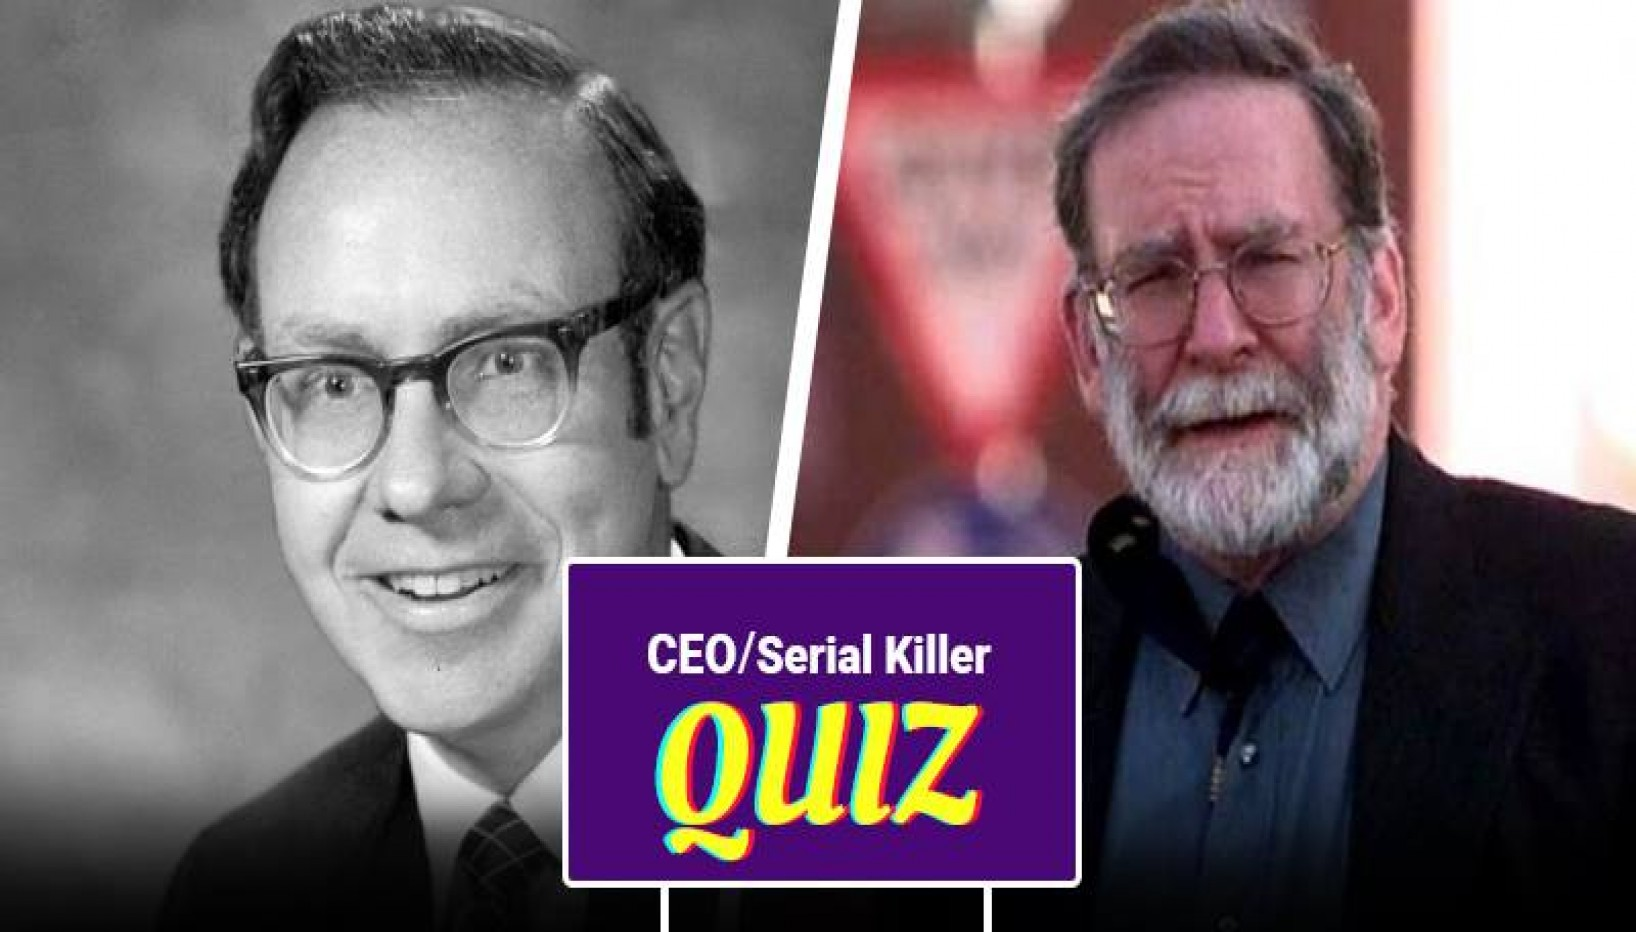 QUIZ: Only Sherlock Holmes Can Identify If These Individuals Are CEOs Or Serial Killers.